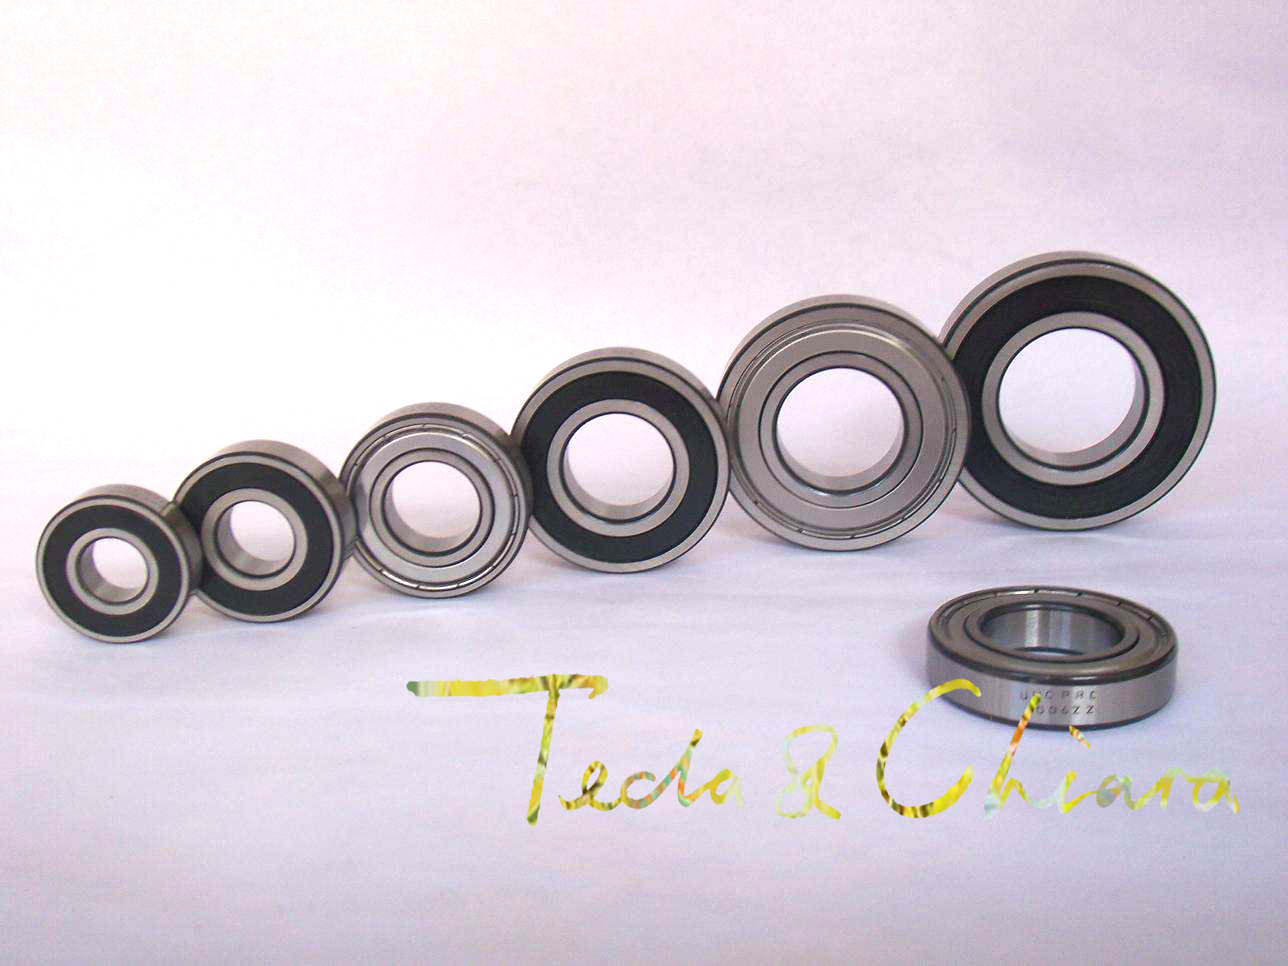 607 607ZZ 607RS 607-2Z 607Z 607-2RS ZZ RS RZ 2RZ Deep Groove Ball Bearings 7 x 19 x 6mm High Quality free shipping 25x47x12mm deep groove ball bearings 6005 zz 2z 6005zz bearing 6005zz 6005 2rs